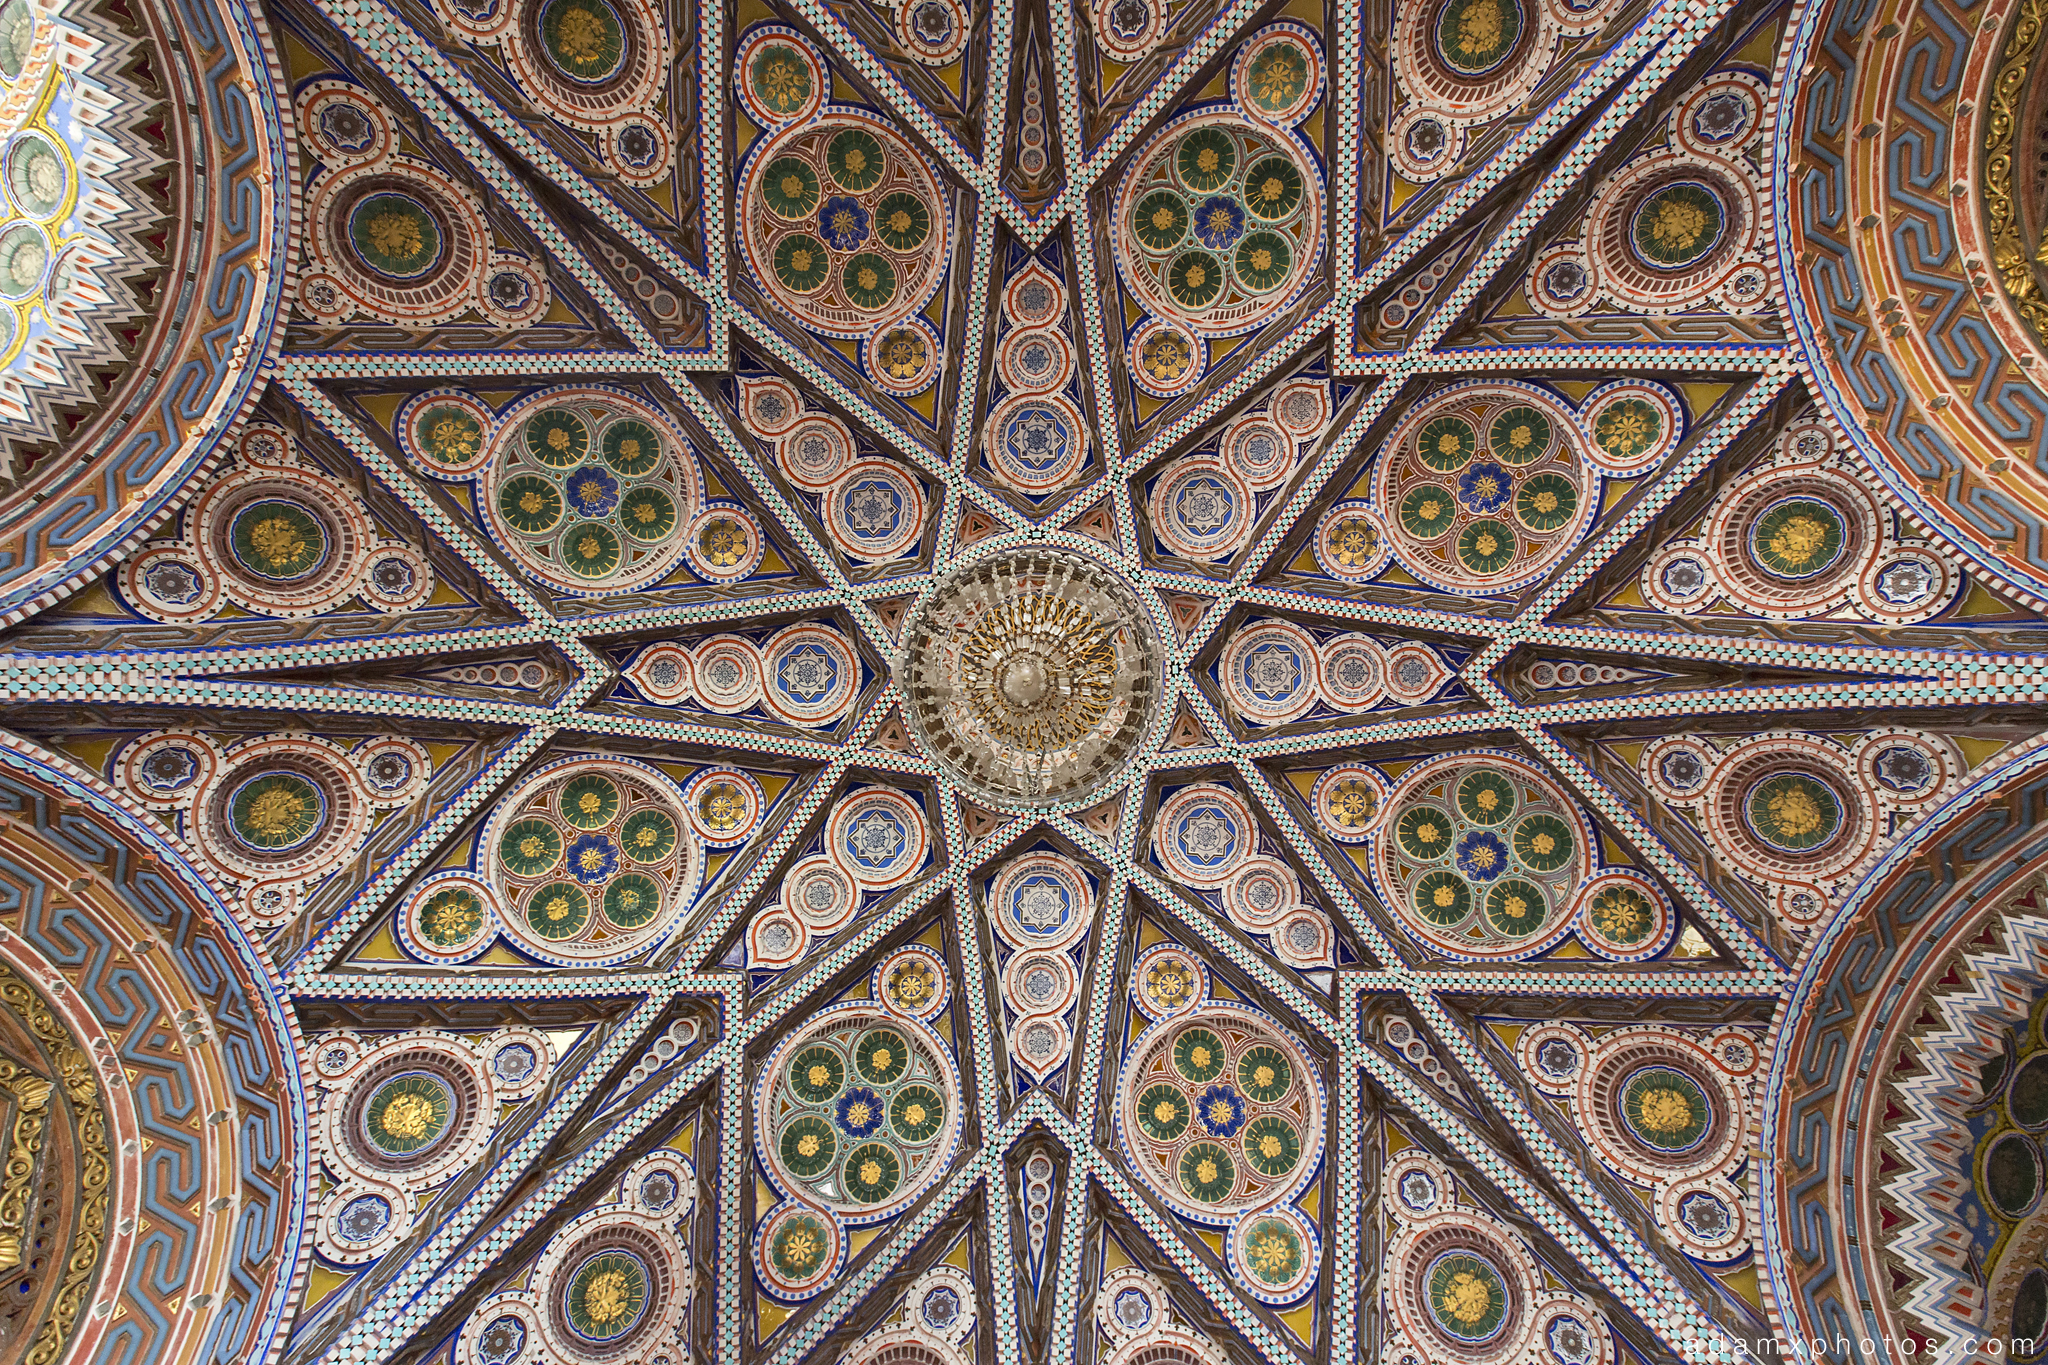 Ornate ceiling detail colours tiles Non Plus Ultra Fairytale Castle of Sammezzano Castello di Sammezzano Urbex Adam X Urban Exploration photo photos report decay detail UE abandoned Ornate Moorish tiling tiled derelict unused empty disused decay decayed decaying grimy grime